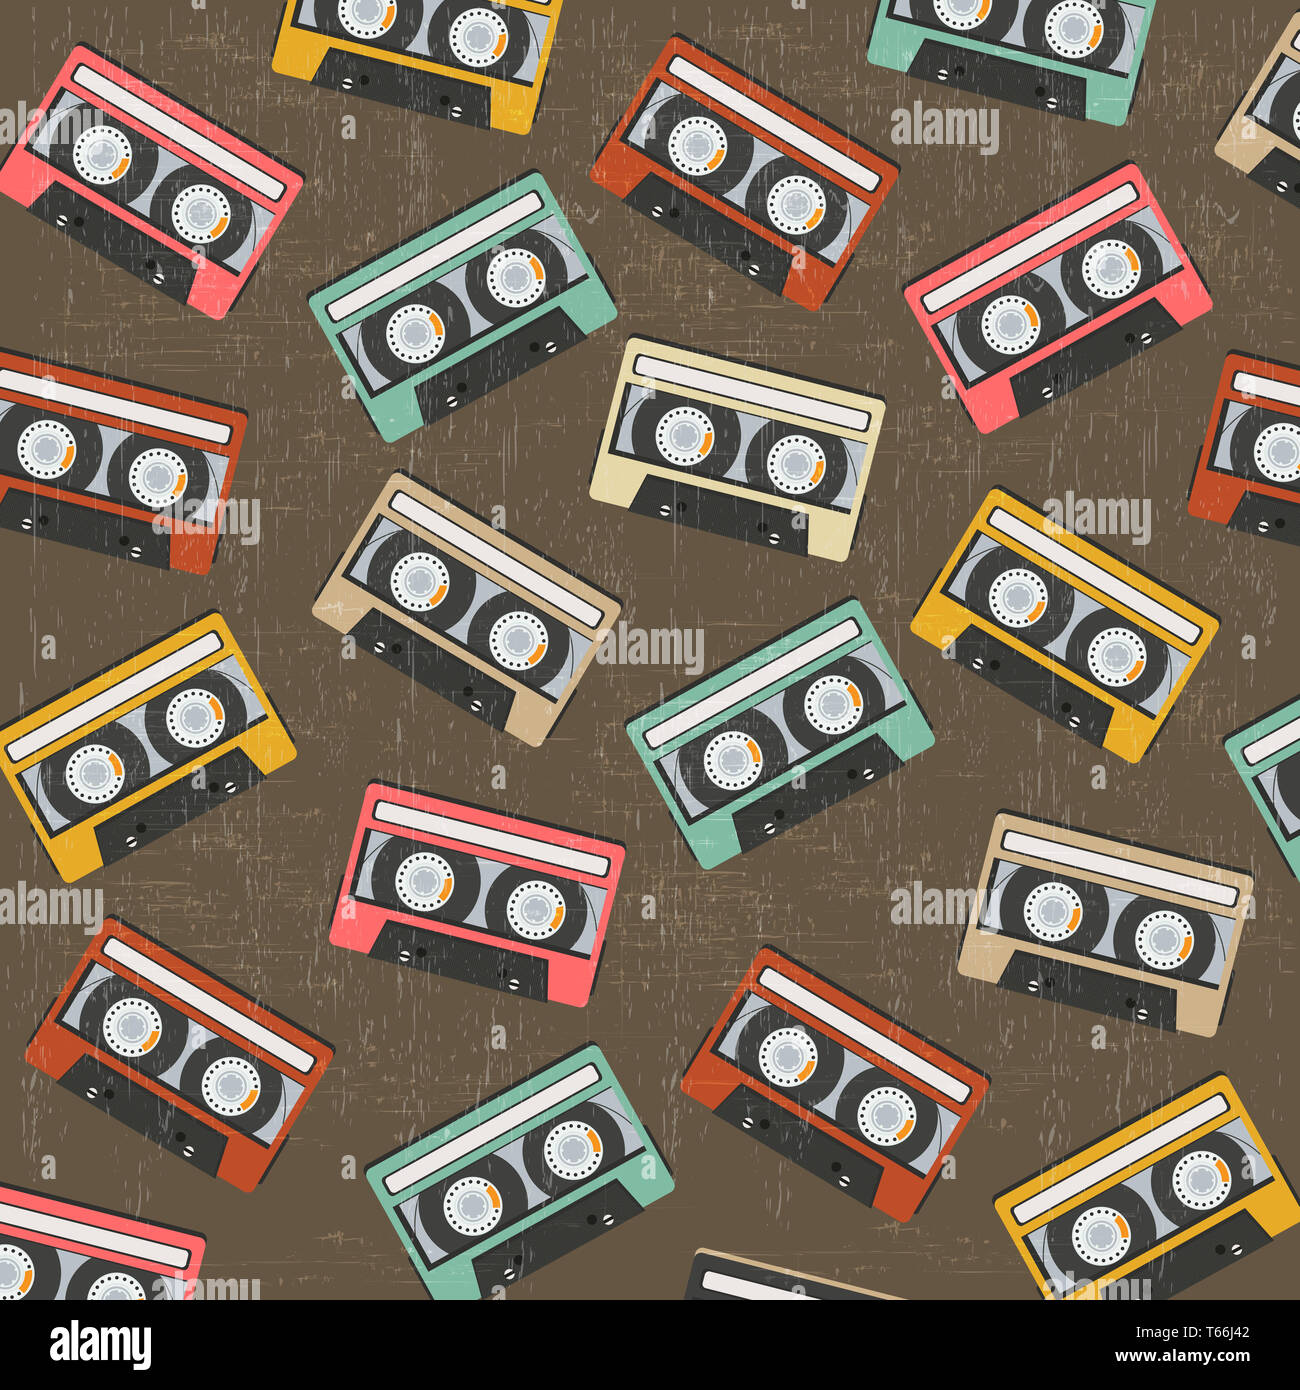 seamless background with vintage analogue music recordable cassettes - Stock Image